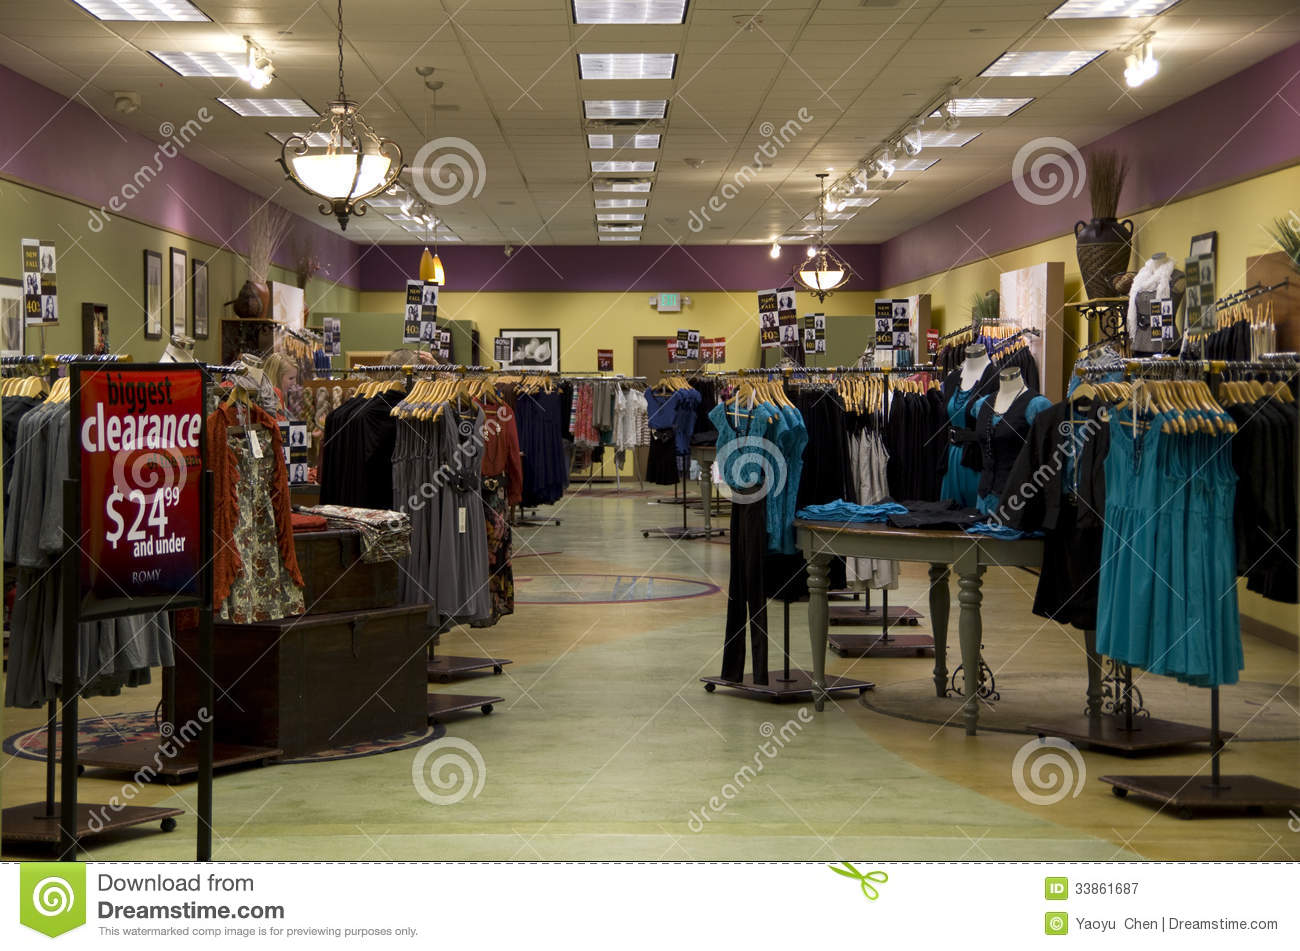 e7a7c51e86f A store with nice interiors selling women clothing in Alderwood Mall near  Seattle.